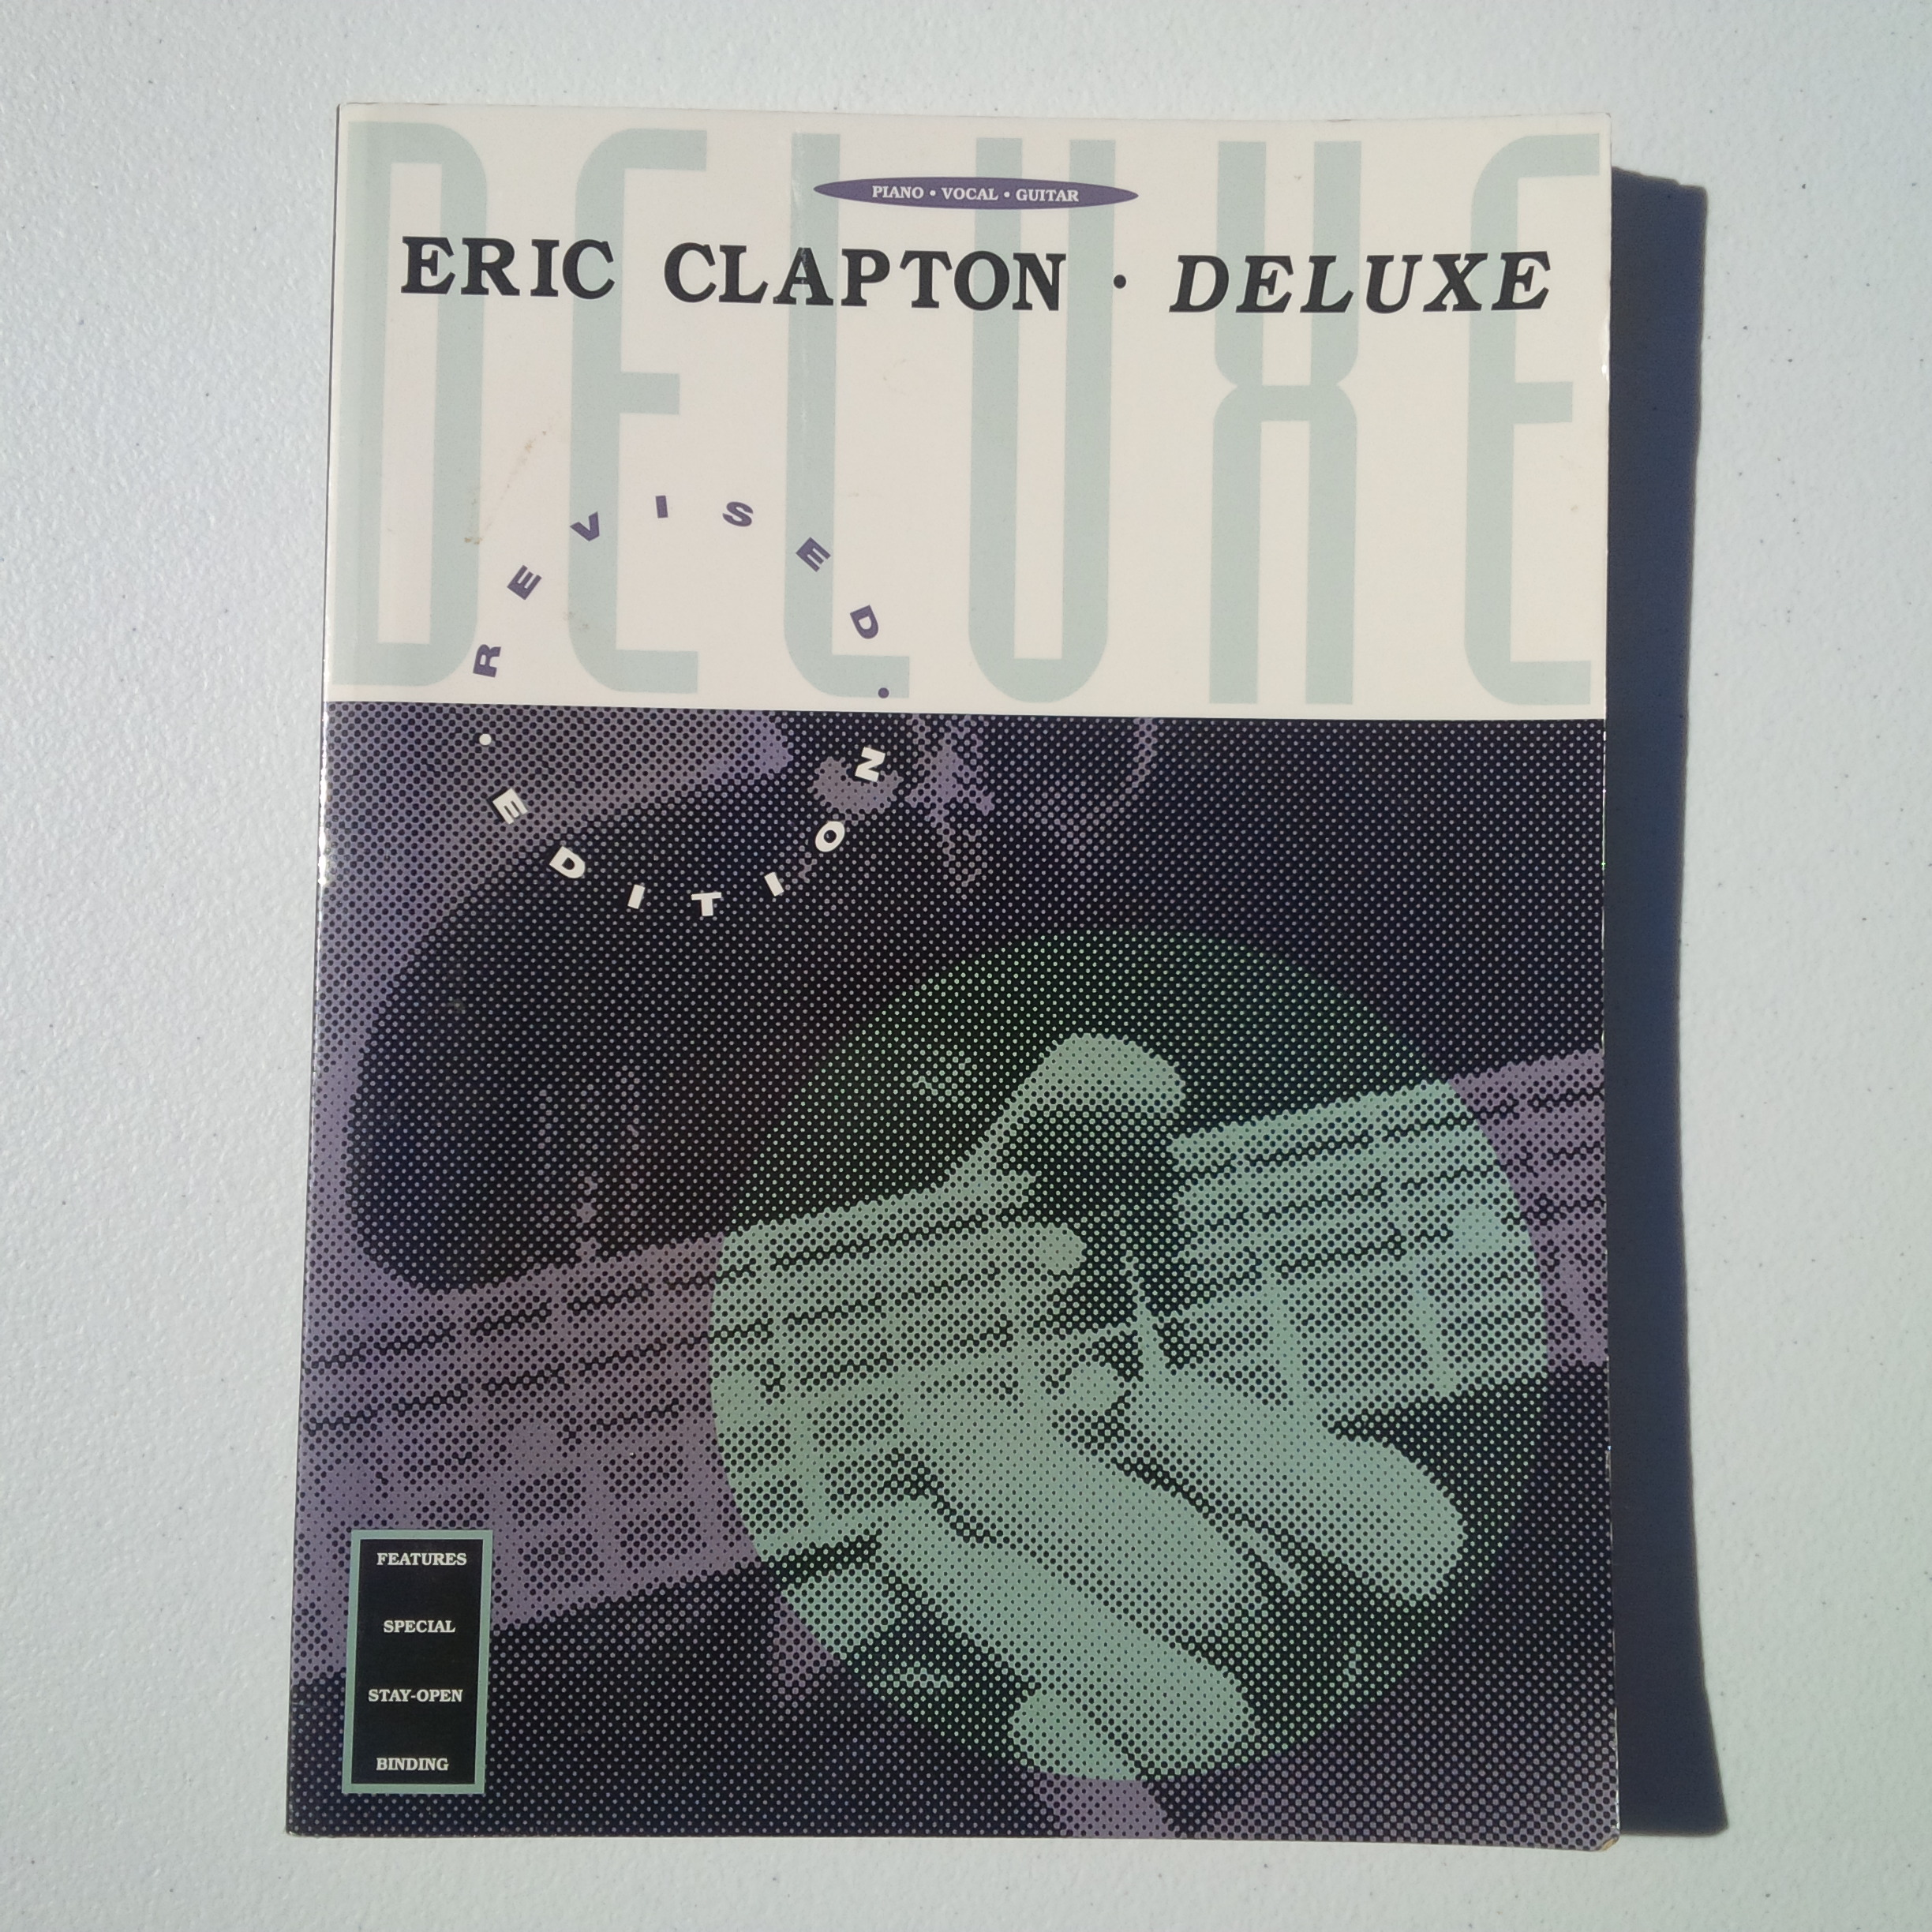 Like New  1991 Eric Clapton 0-7935-0271-1 Deluxe Songbook...